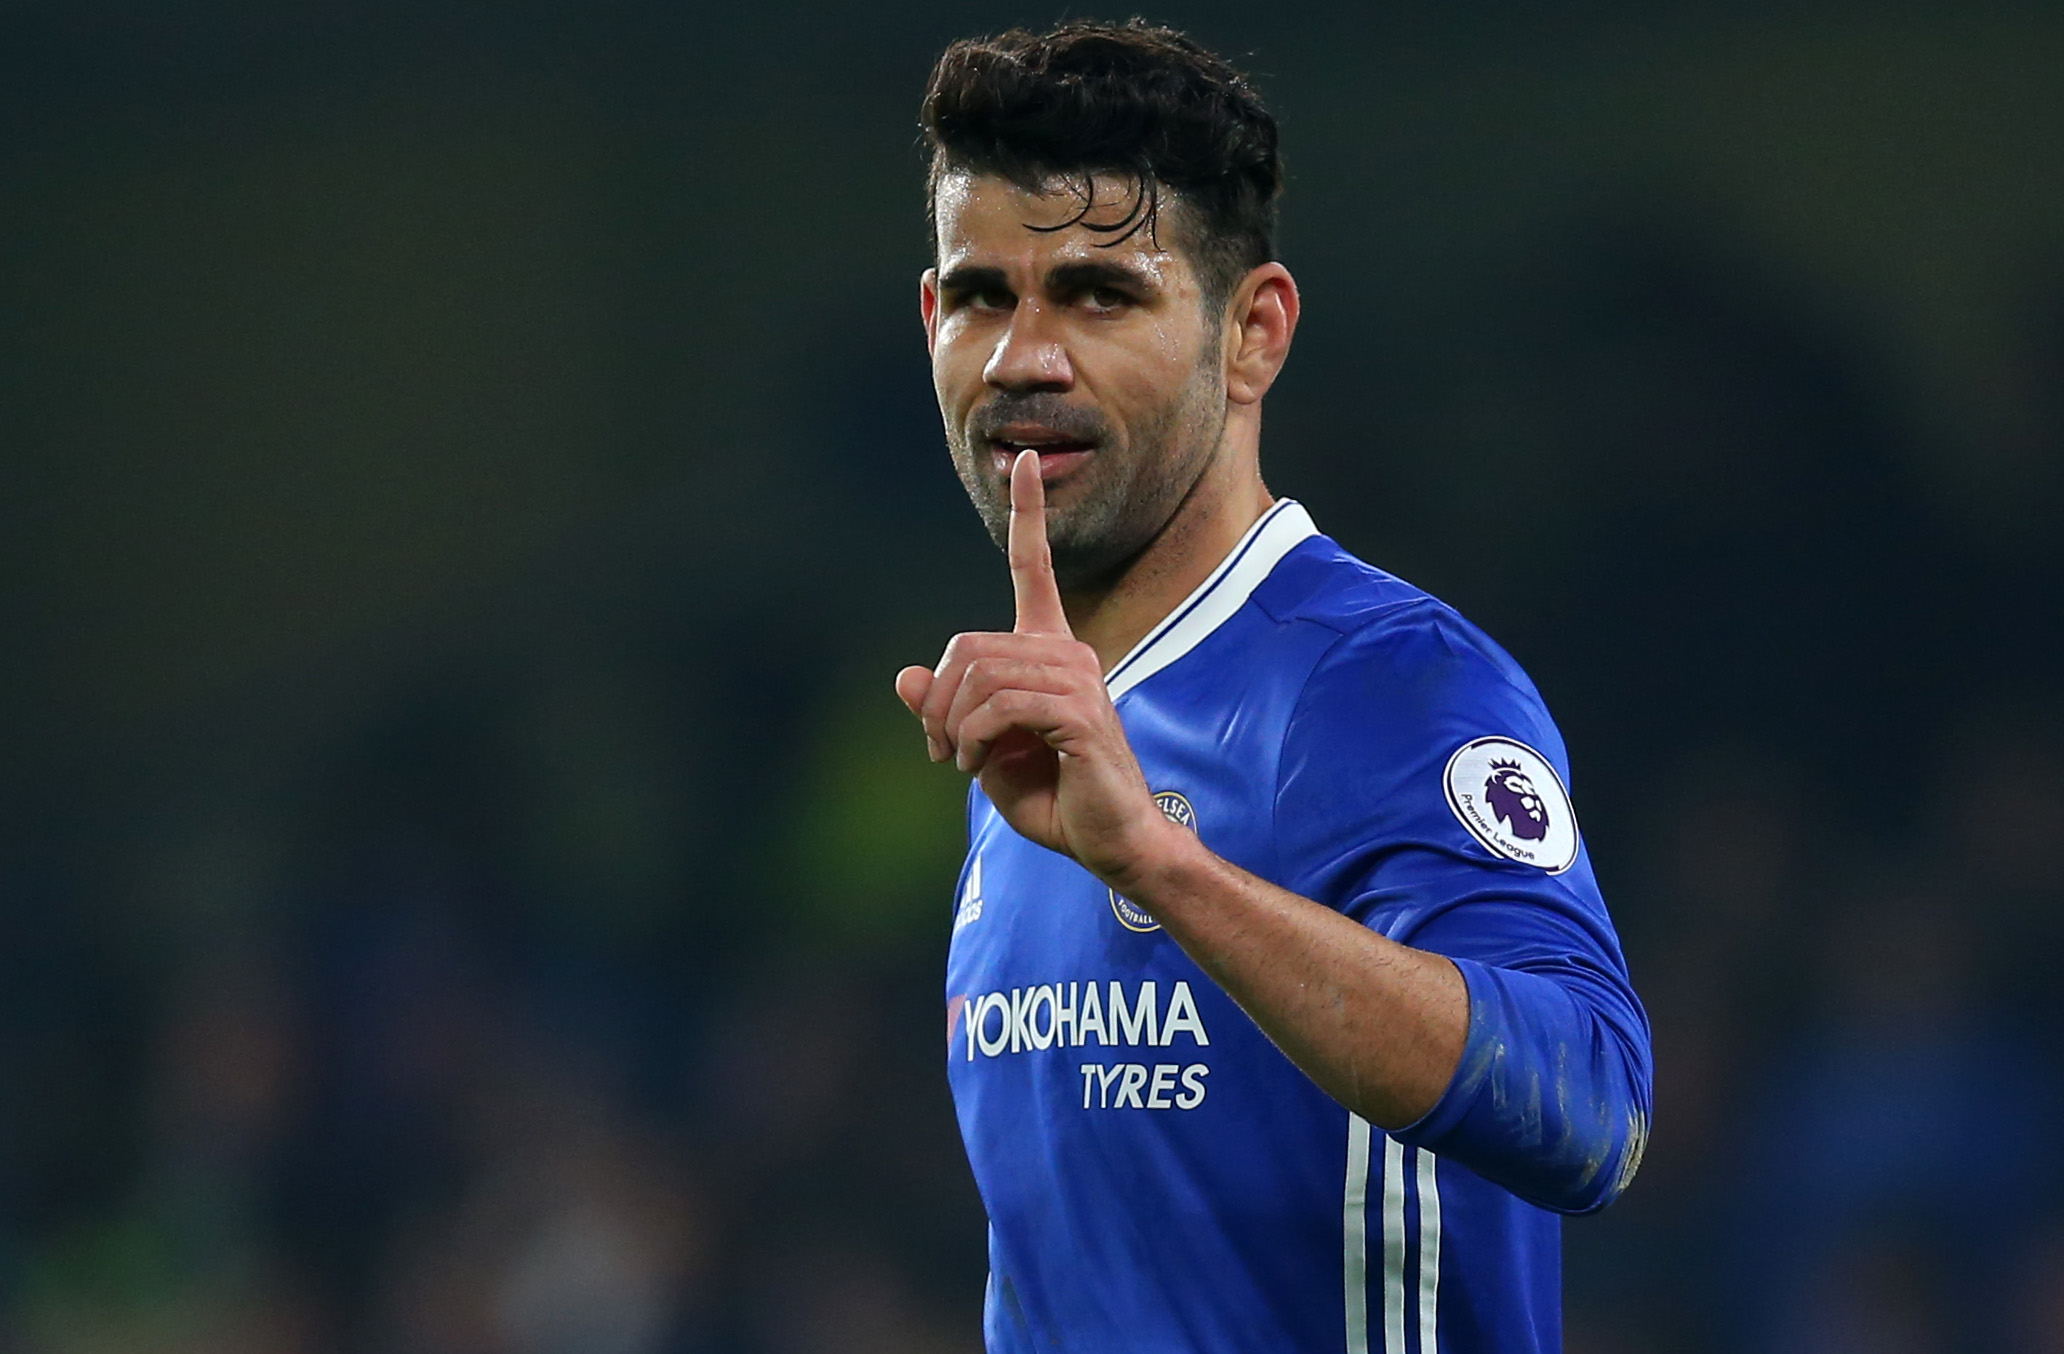 Diego Costa wants Chelsea to match contract offers from China